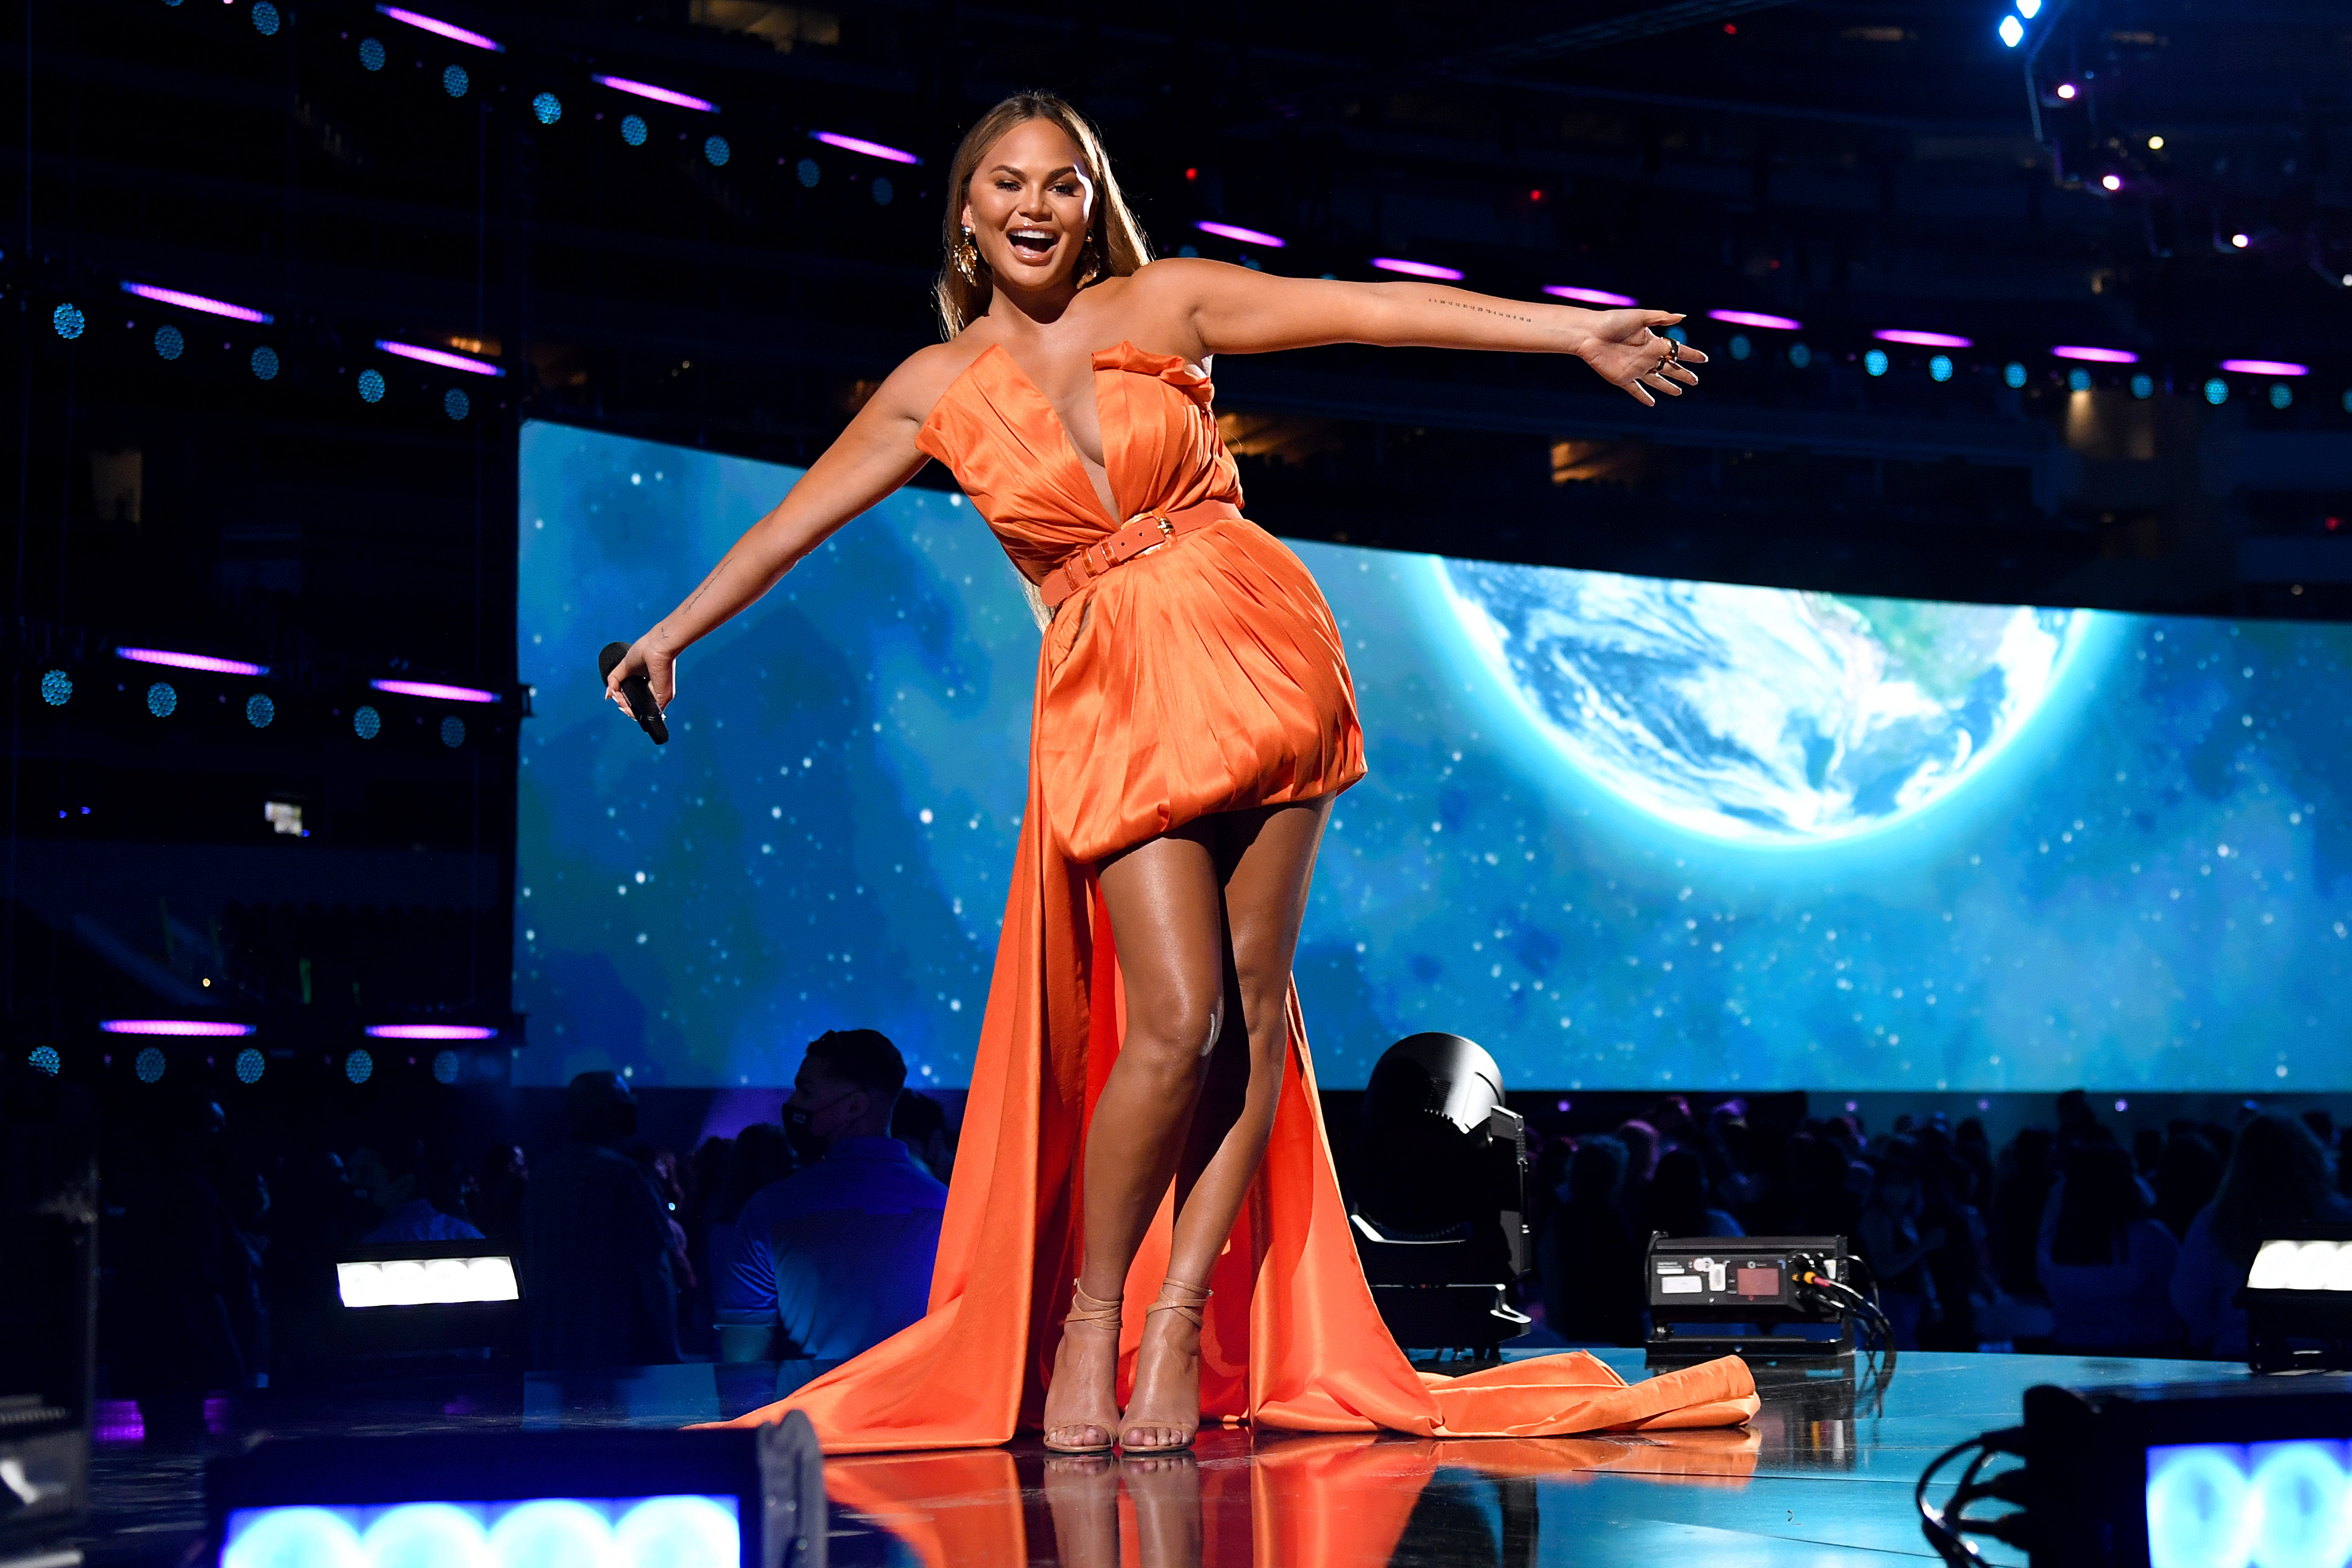 Chrissy Teigen onstage holding her arms out wide.